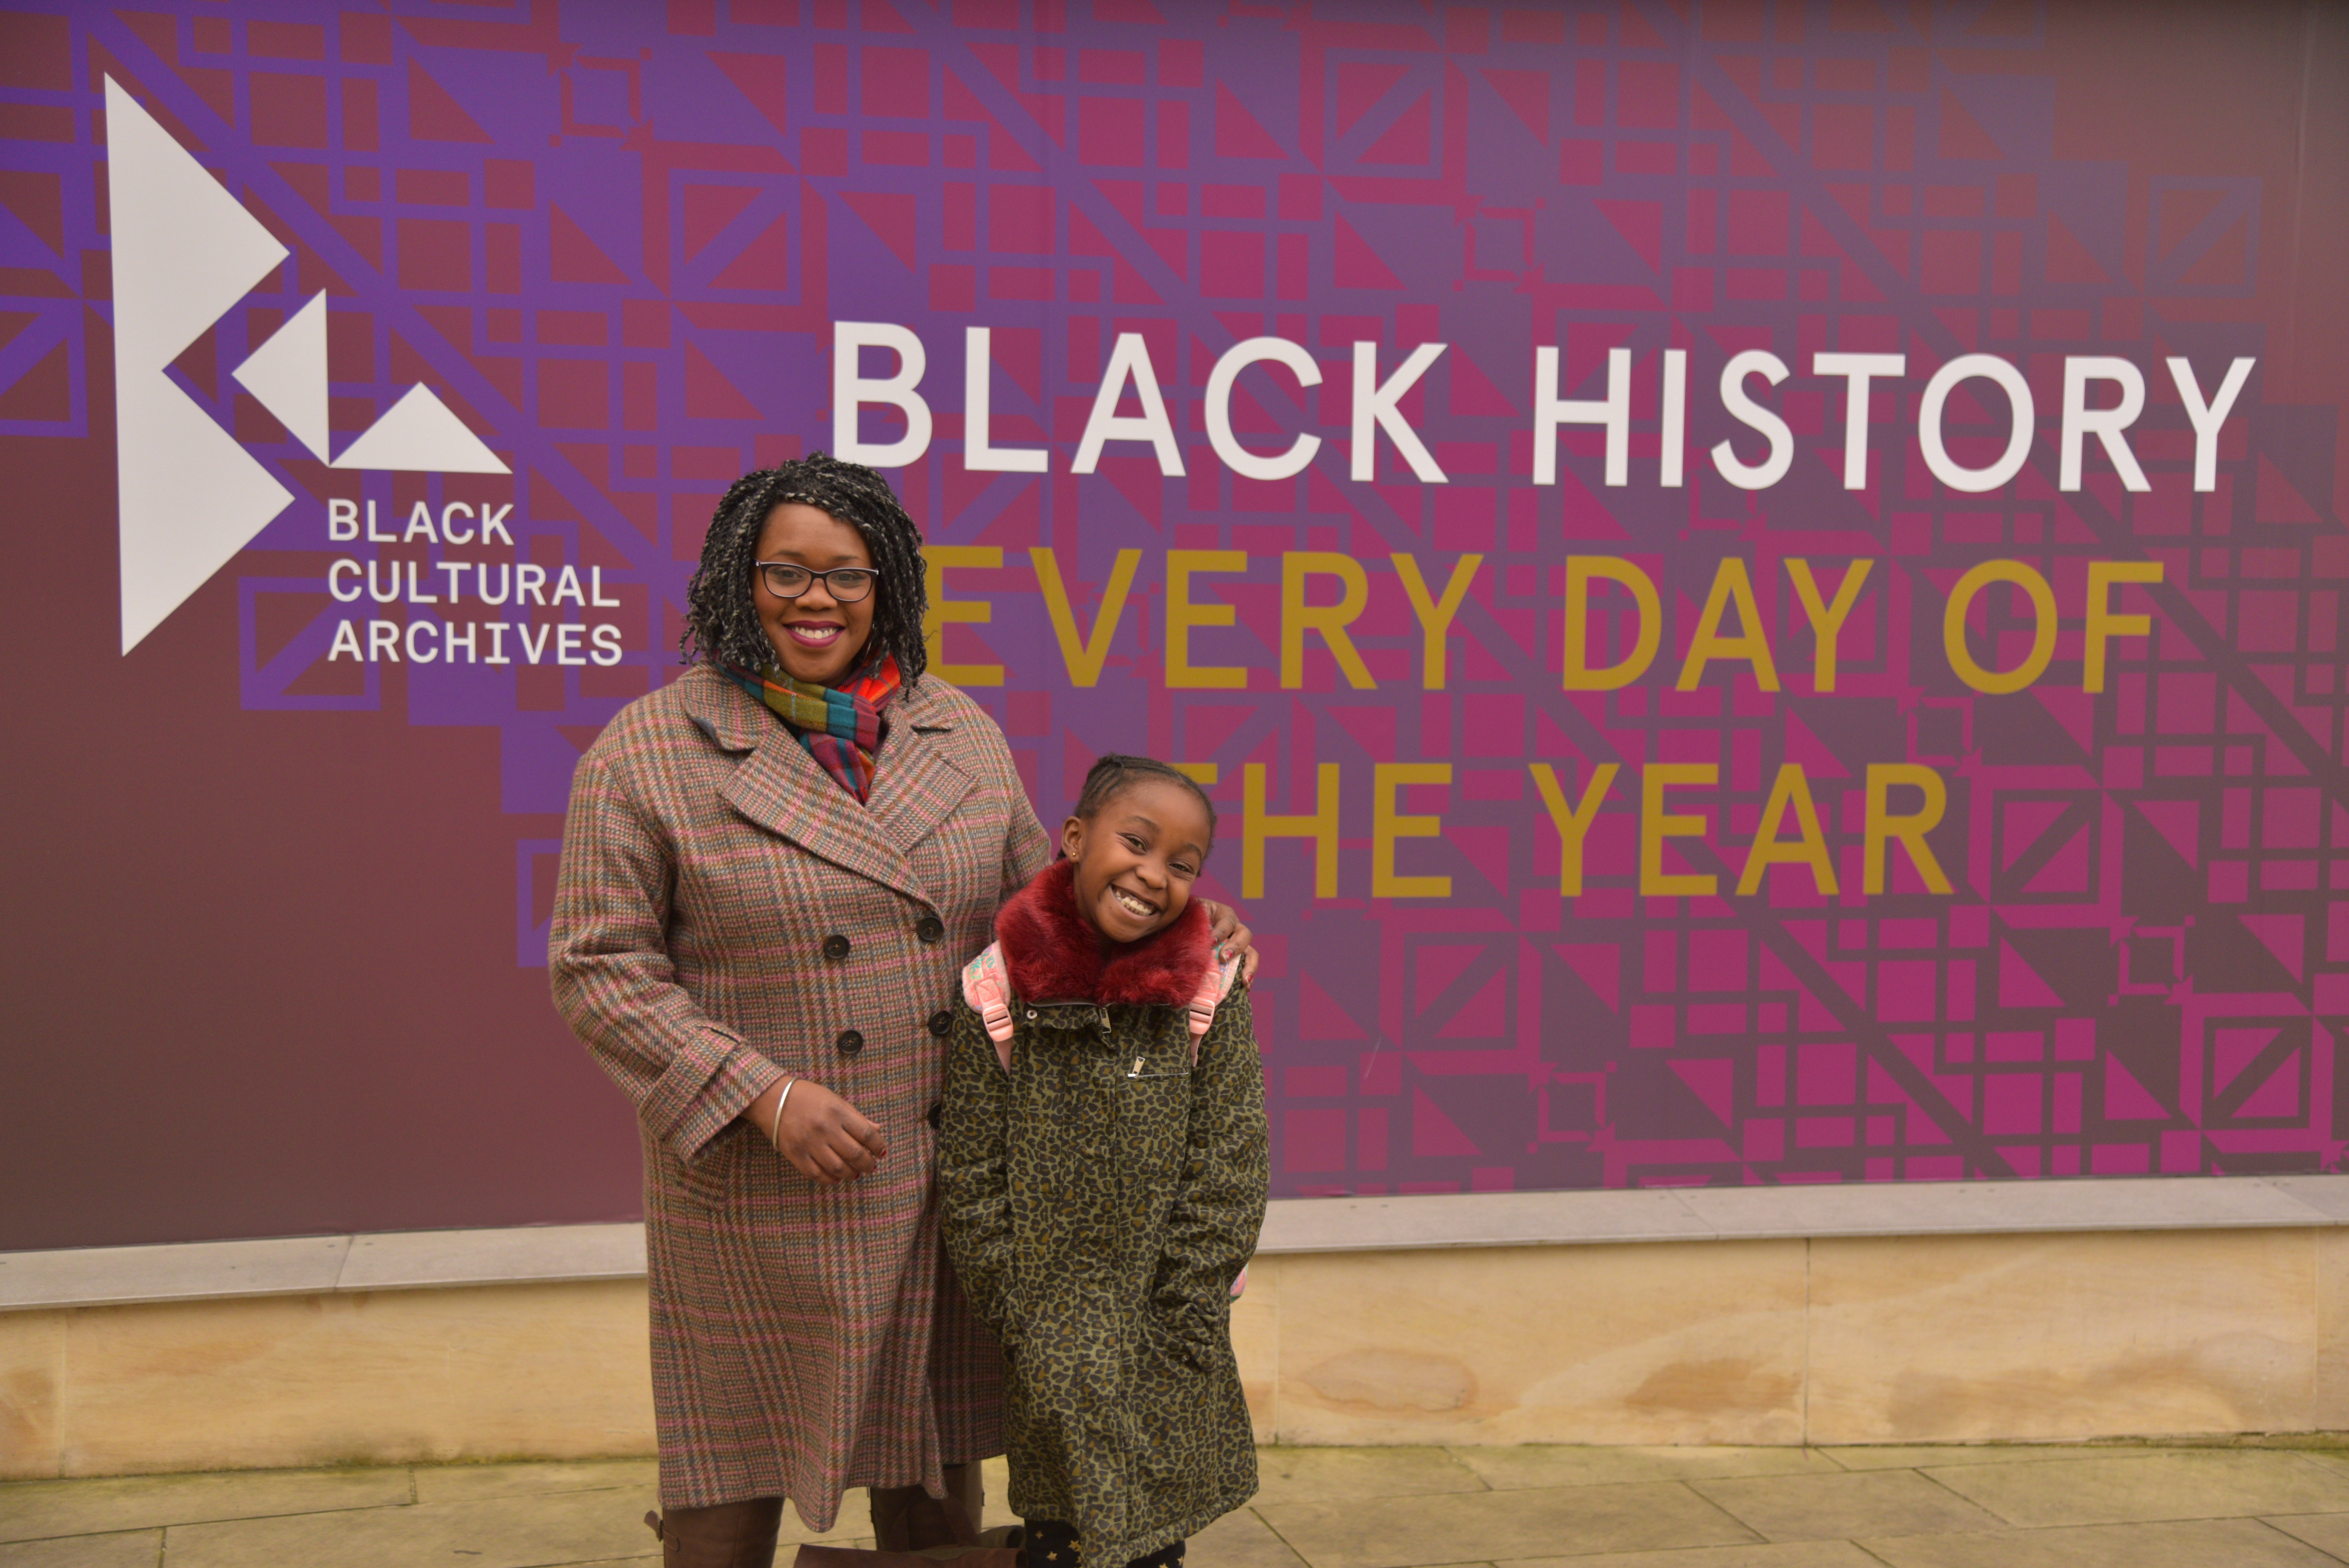 Lisa Phillip with daughter Miai visiting the Black Cultural Archives, London